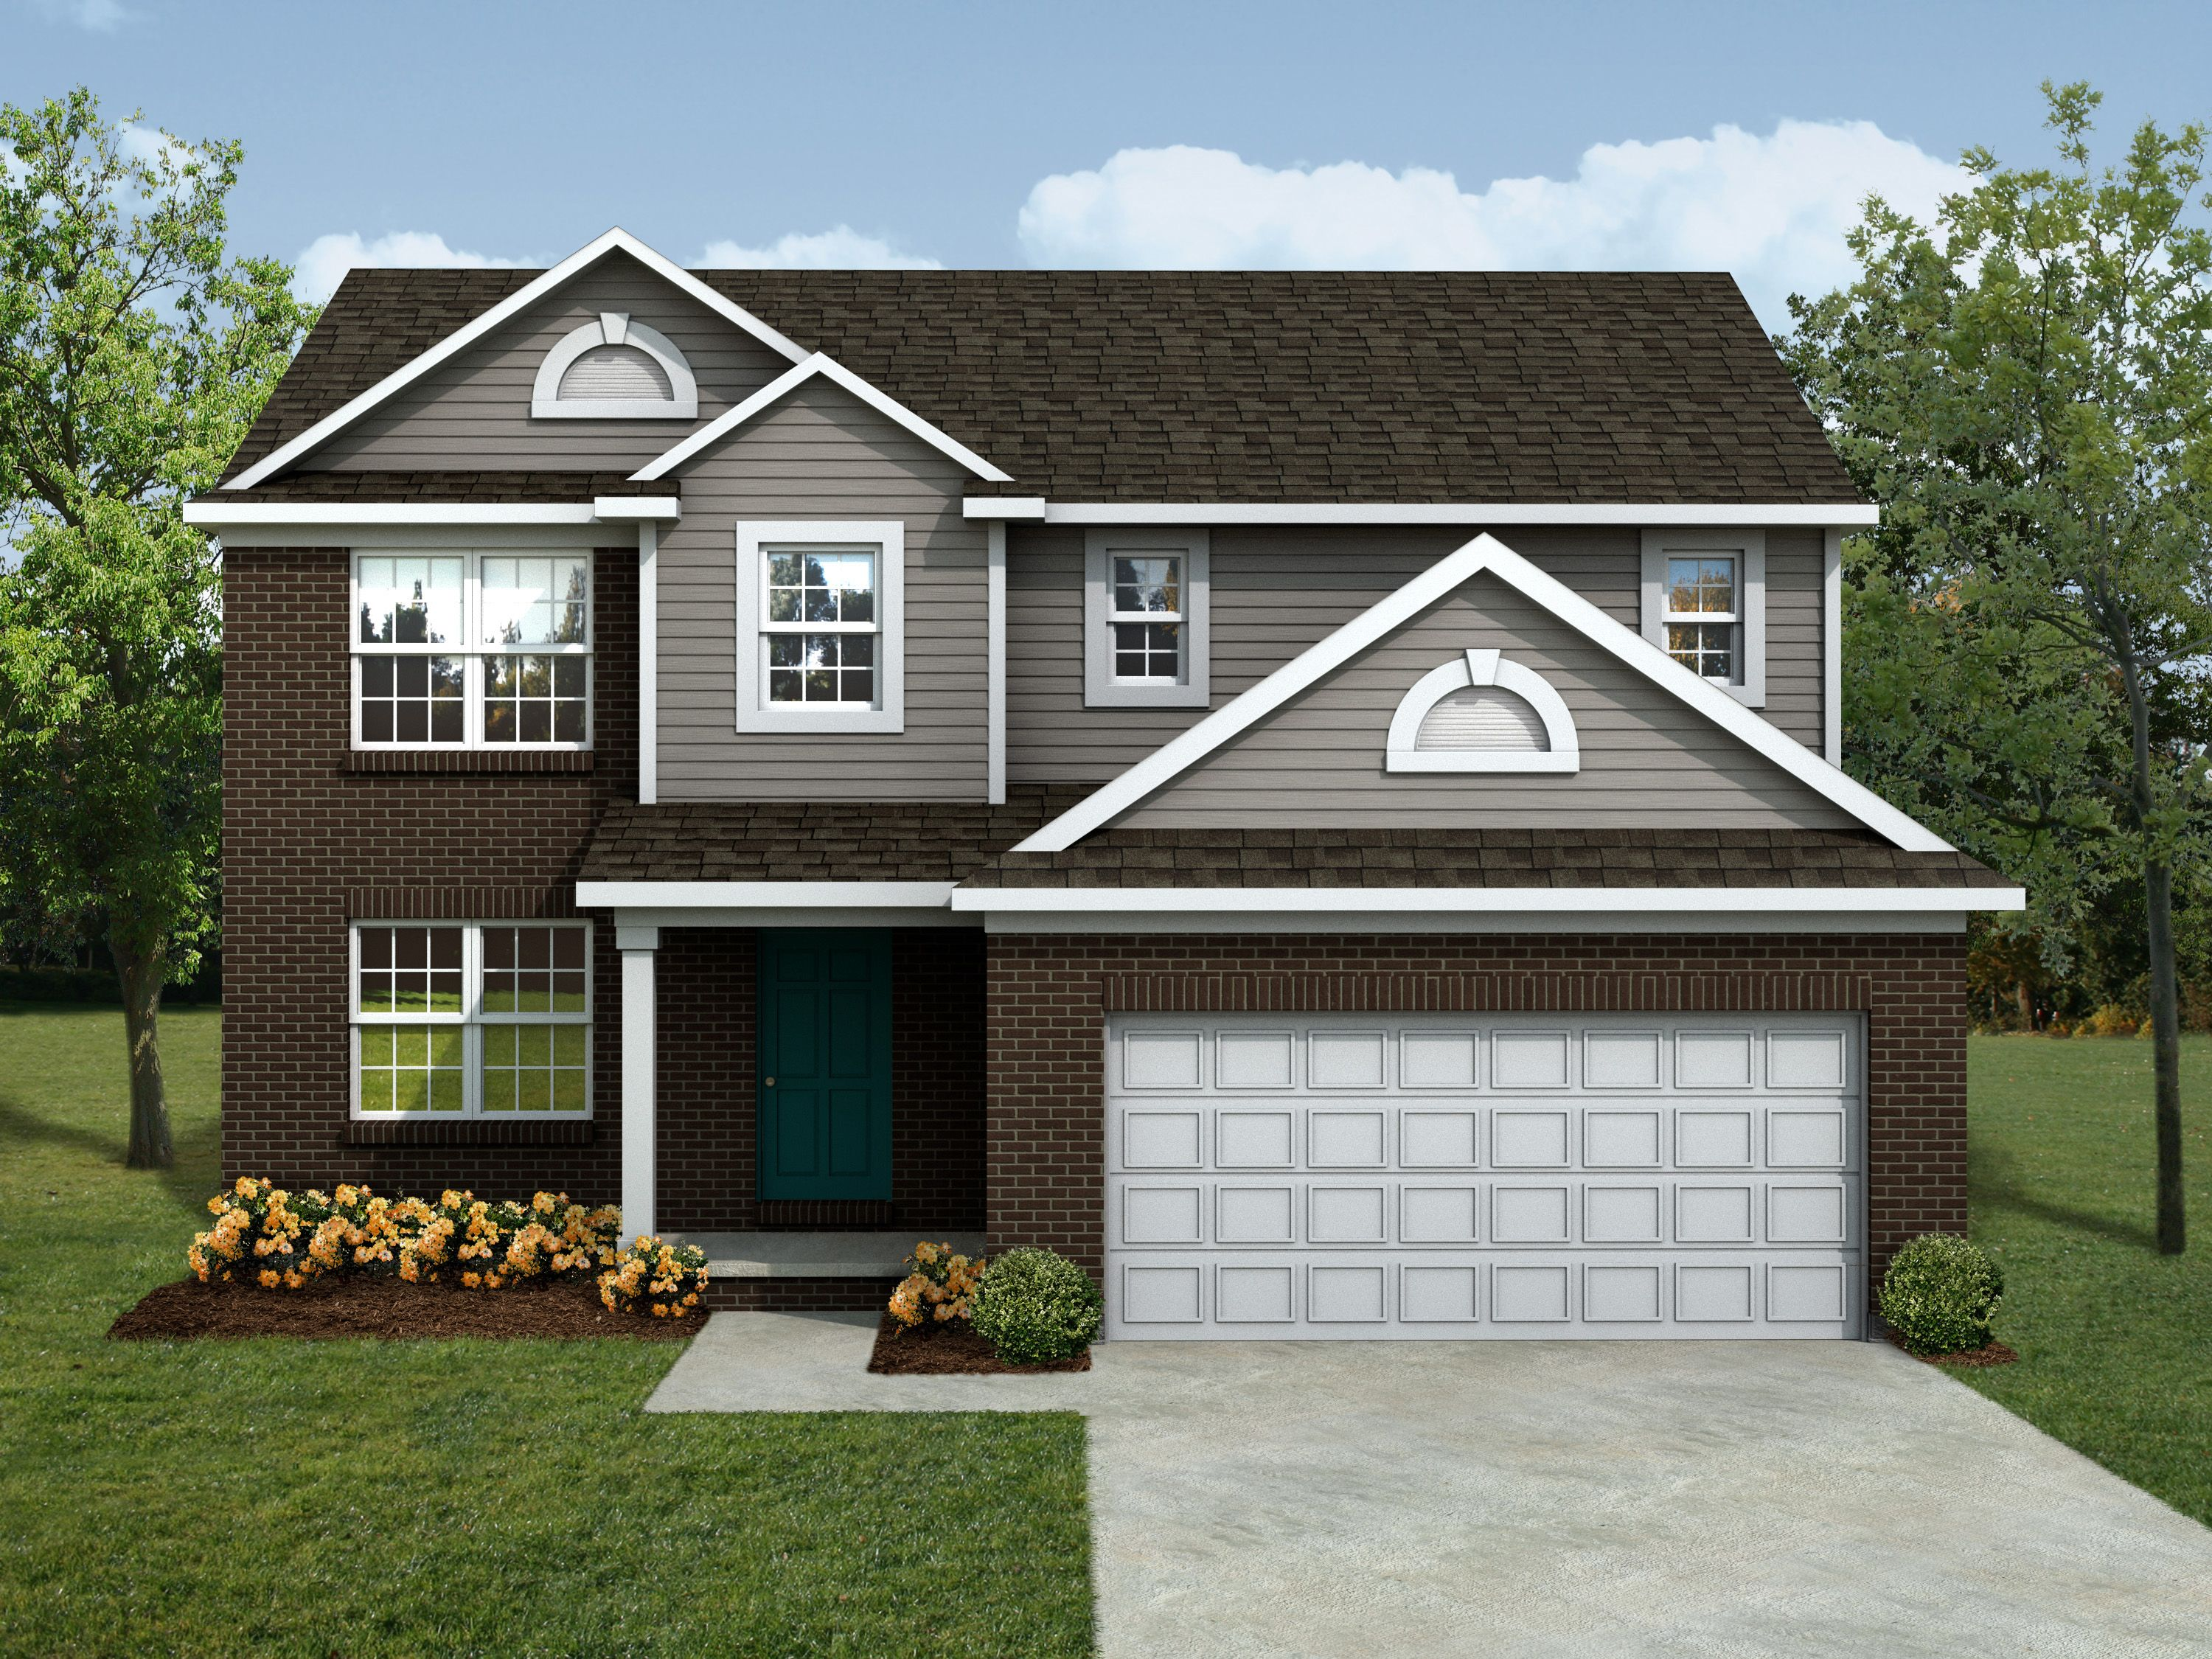 New Homes For Sale In Sterling Heights Mi